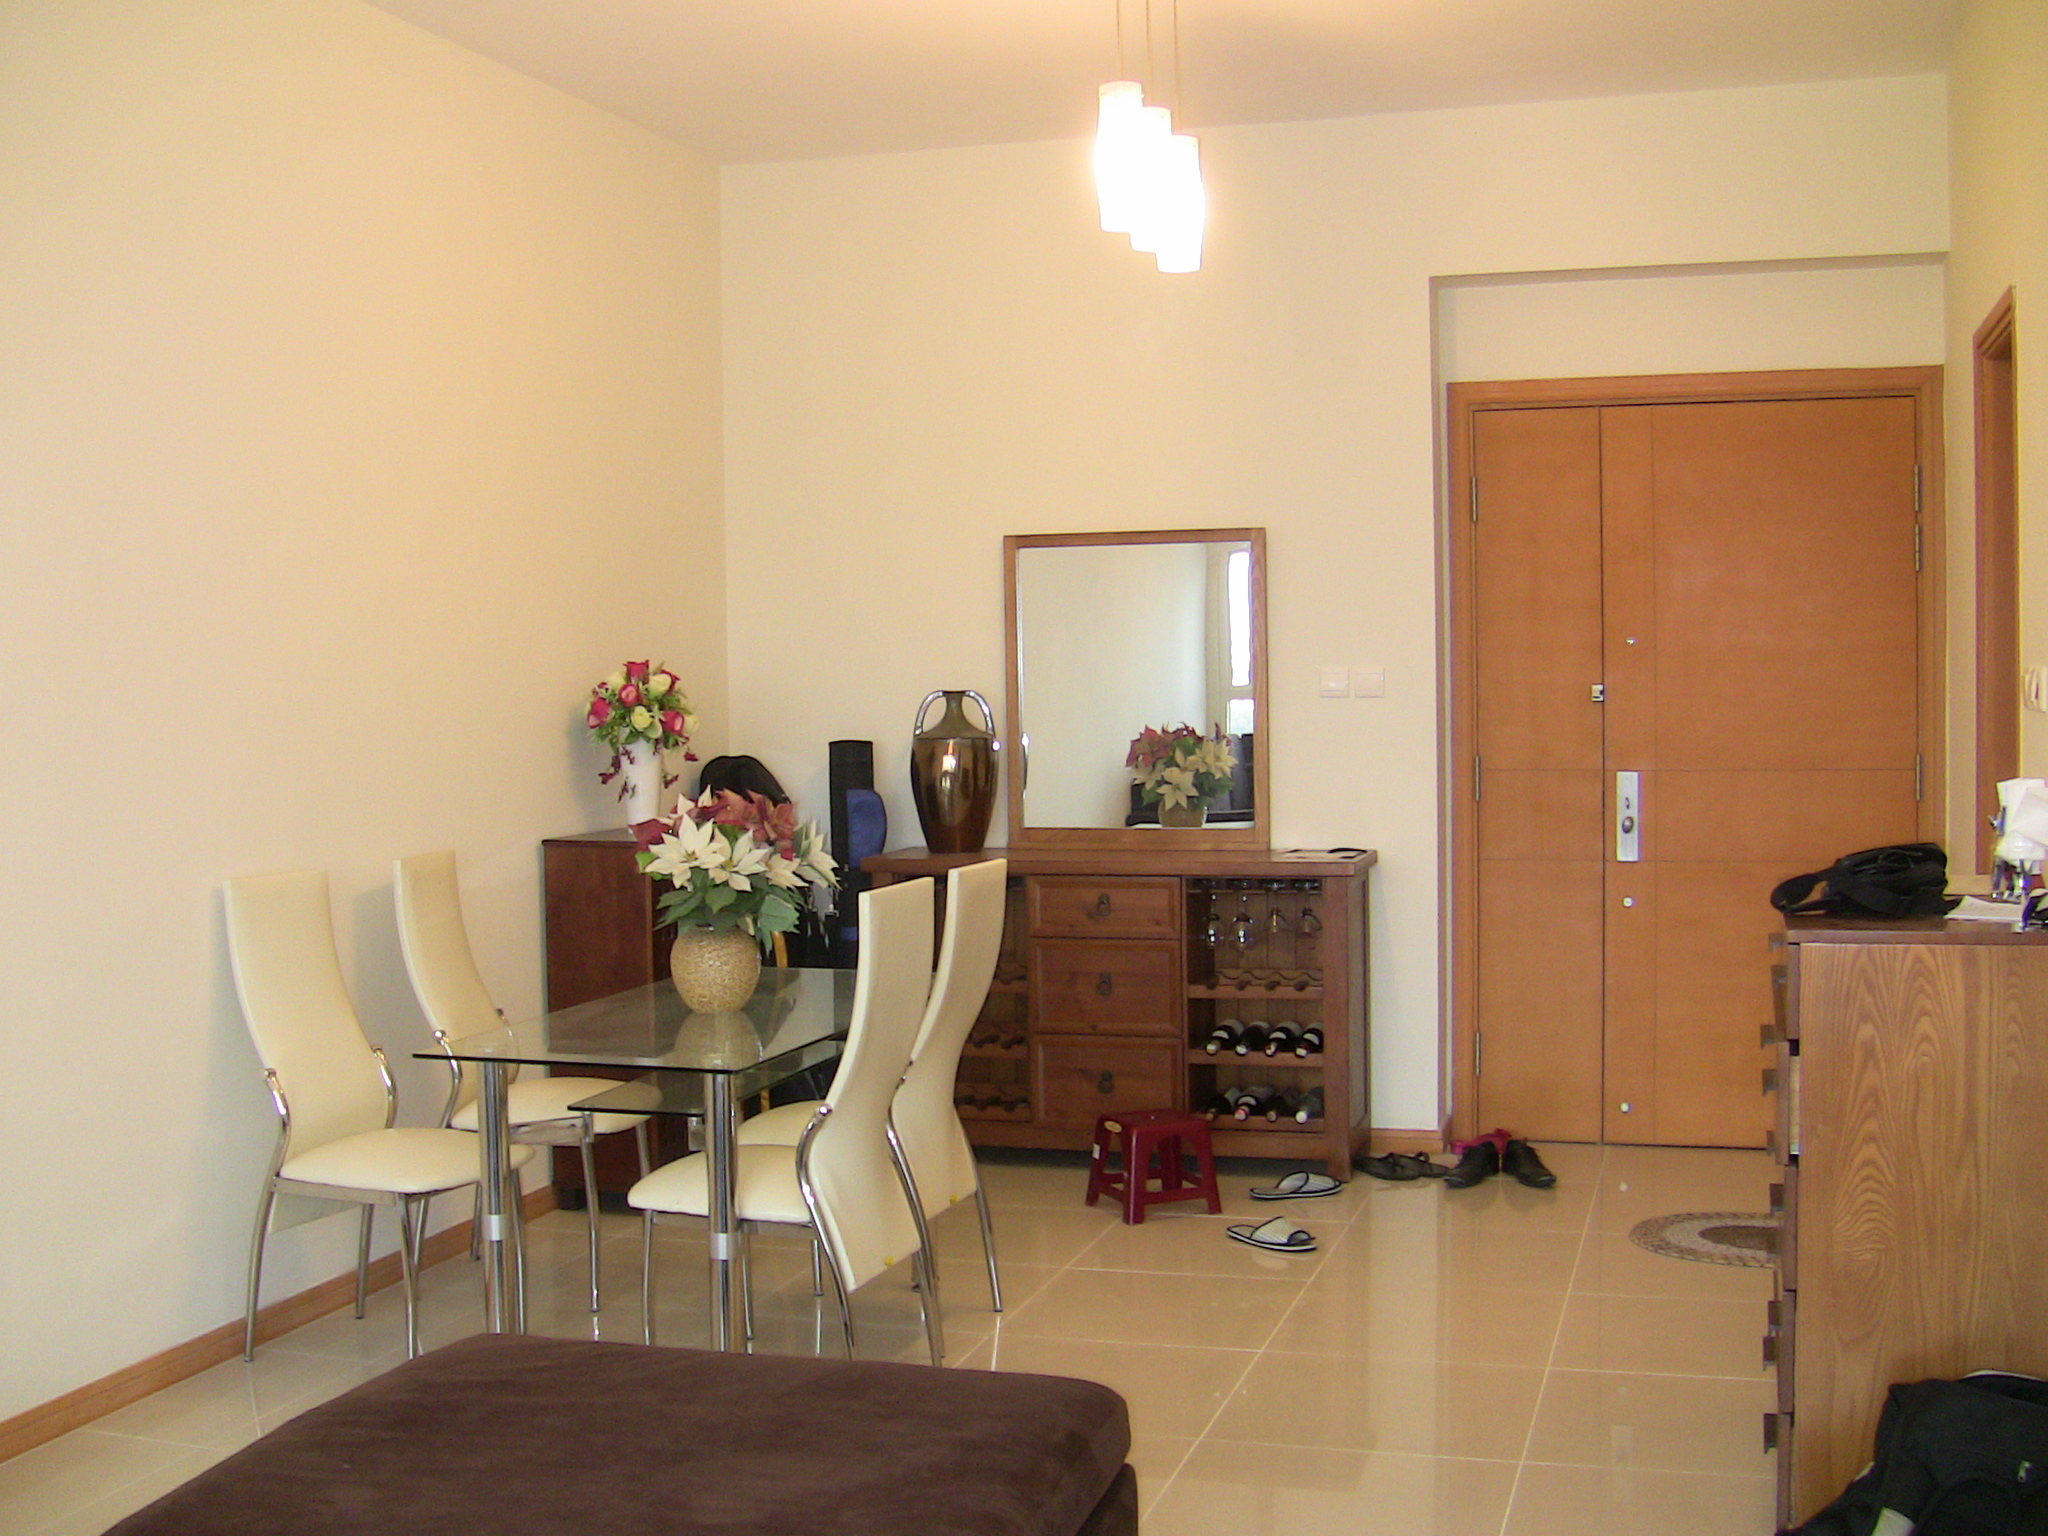 Apartment 2 bedroom in Topaz, 900usd/month